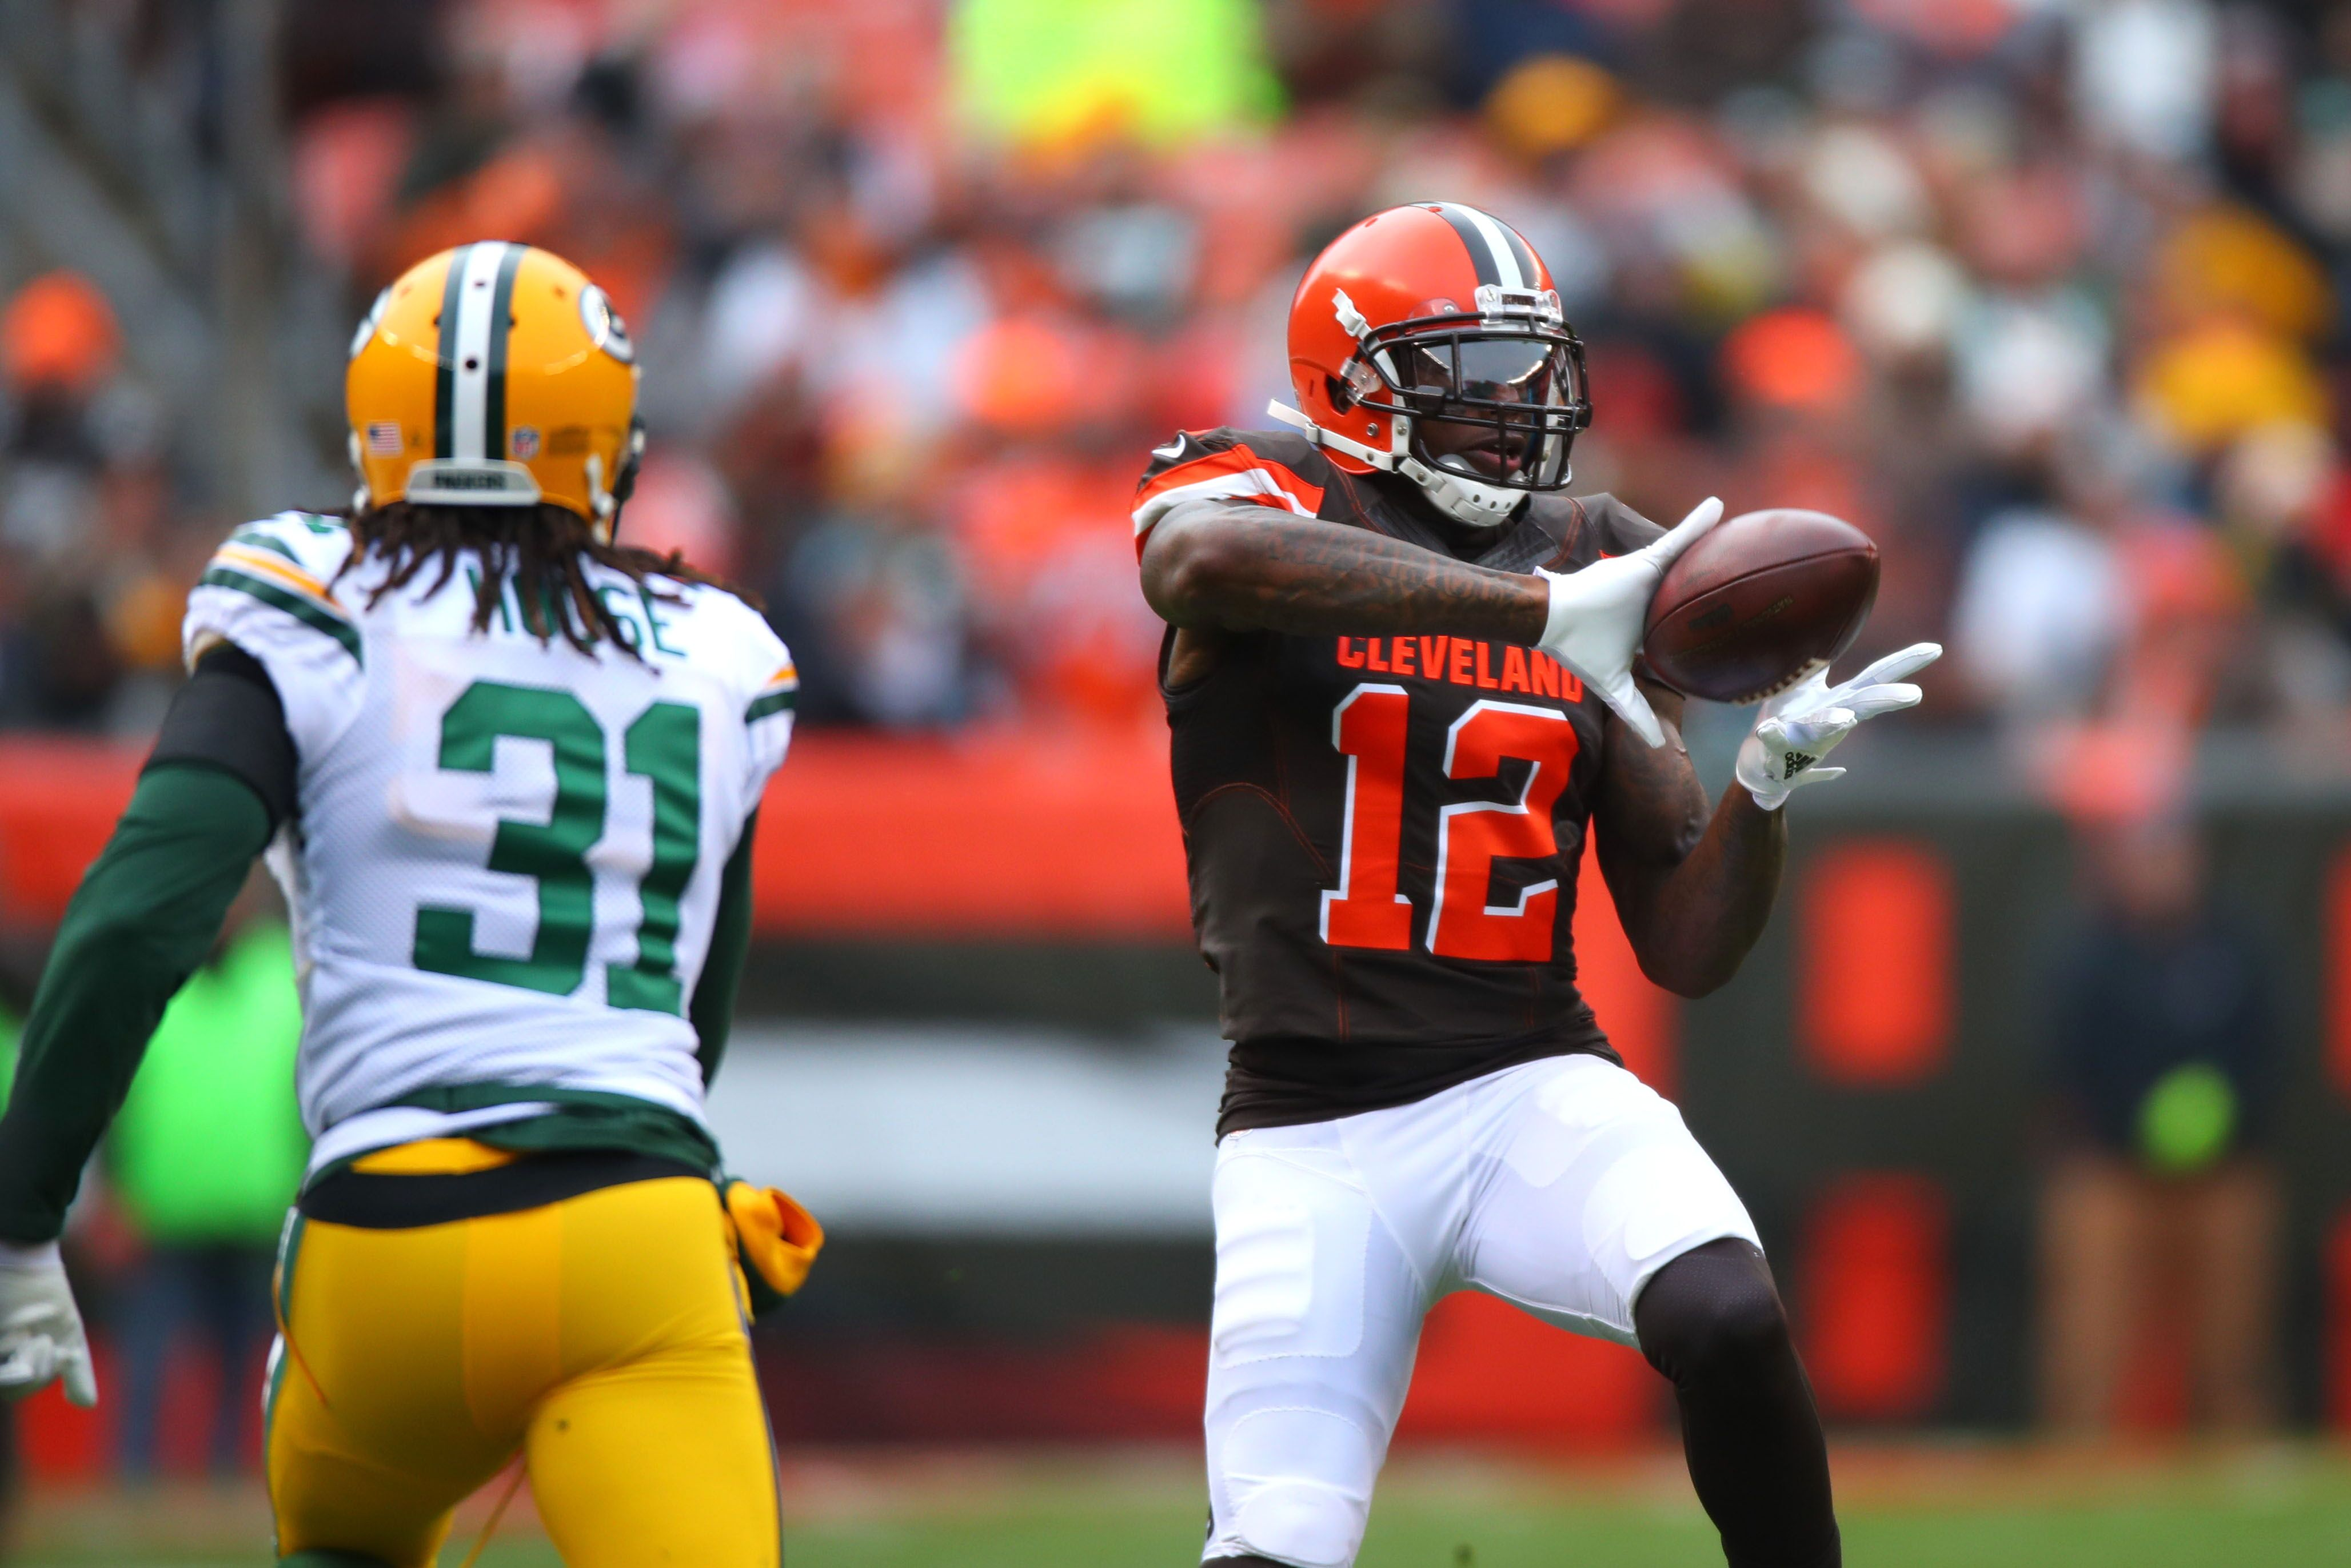 889566692-green-bay-packers-v-cleveland-browns.jpg